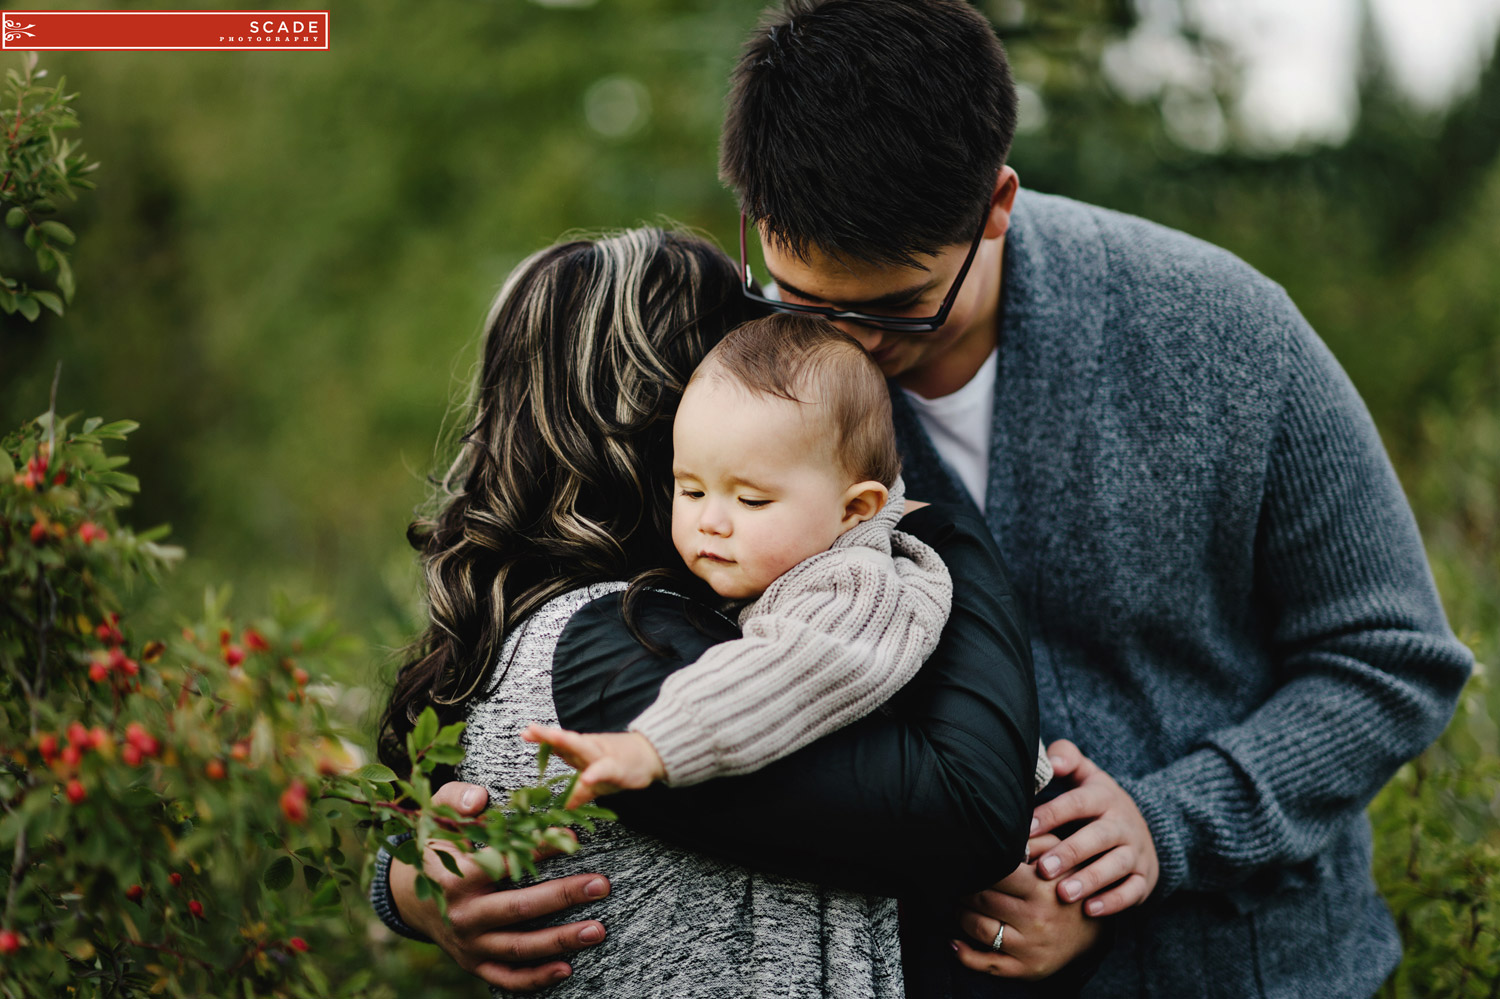 Edmonton Family and Engagement Session - Taylor and Natalia - 0004.JPG